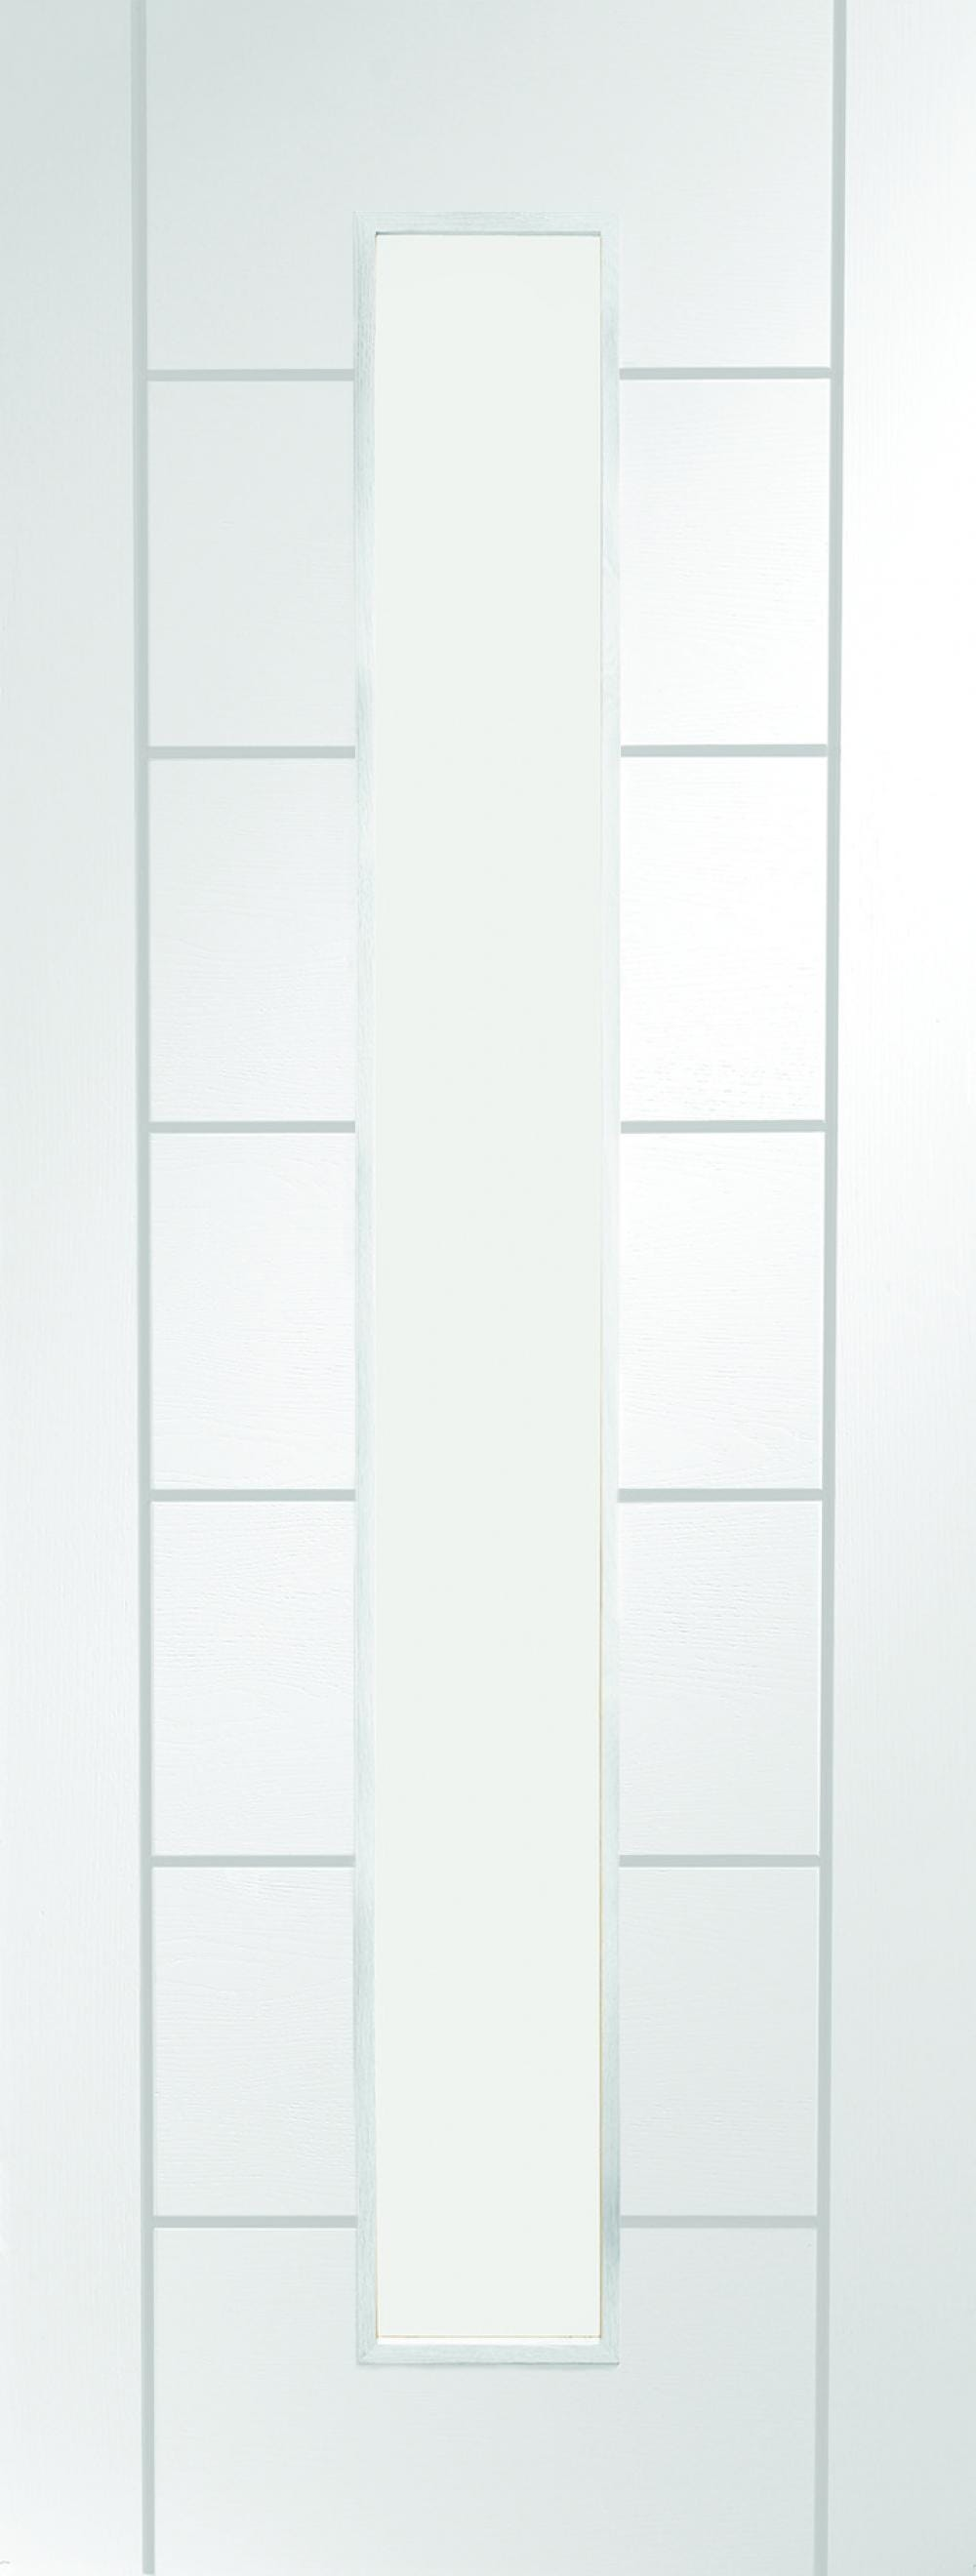 Palermo White 1 Light - Clear Glass Image